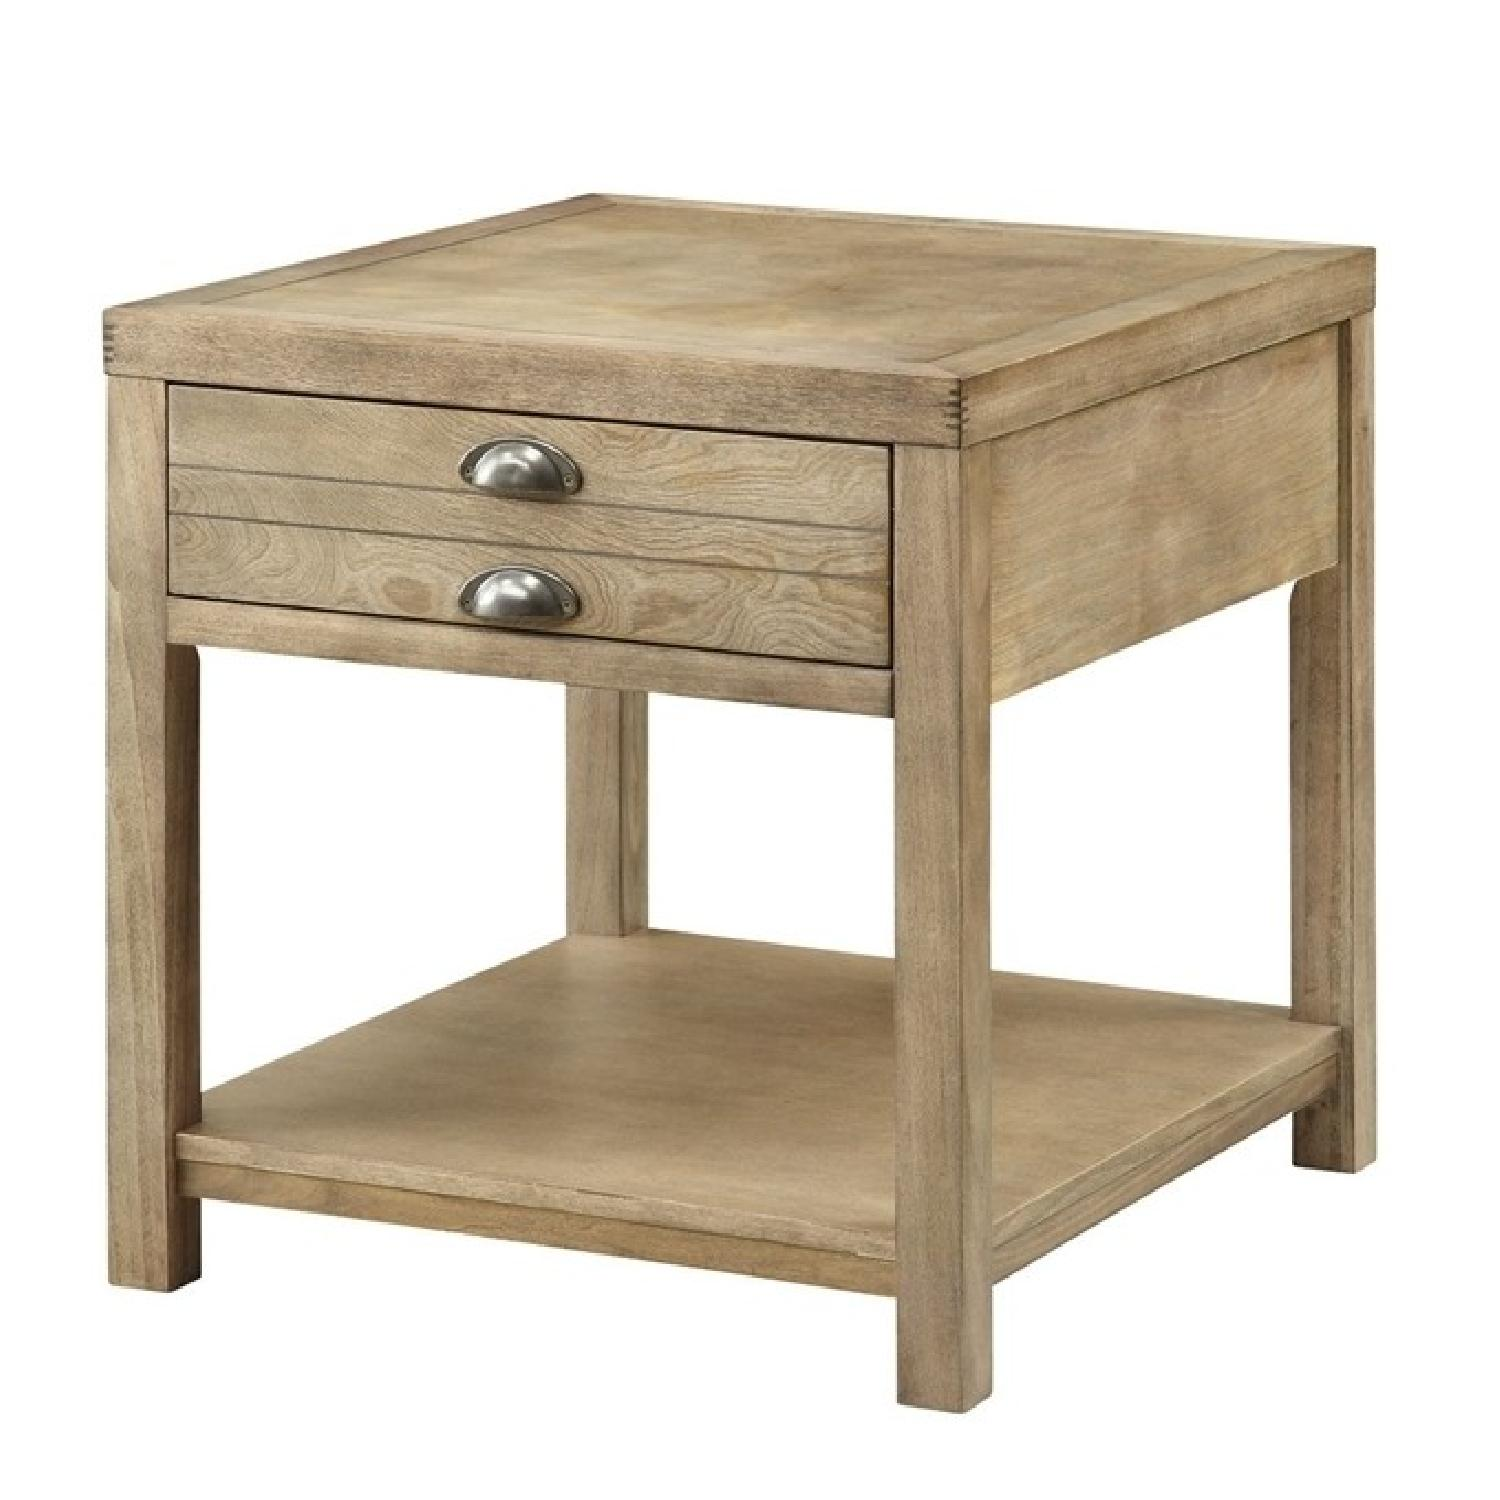 Craftsman Style End Table w/ Drawer in Driftwood Finish